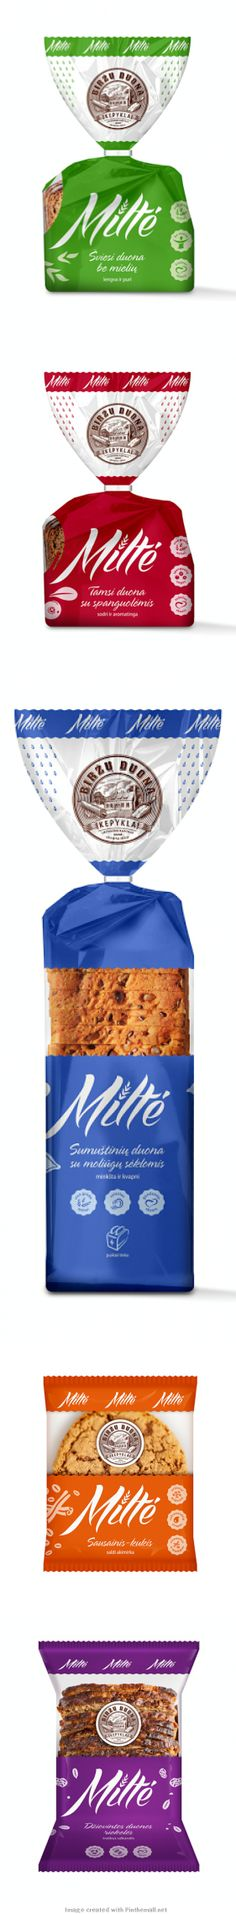 Here's the rest of the yummy looking baked goods #packaging PD created via http://www.packagingoftheworld.com/2014/02/birzu-duona-milte-miss-flour.html